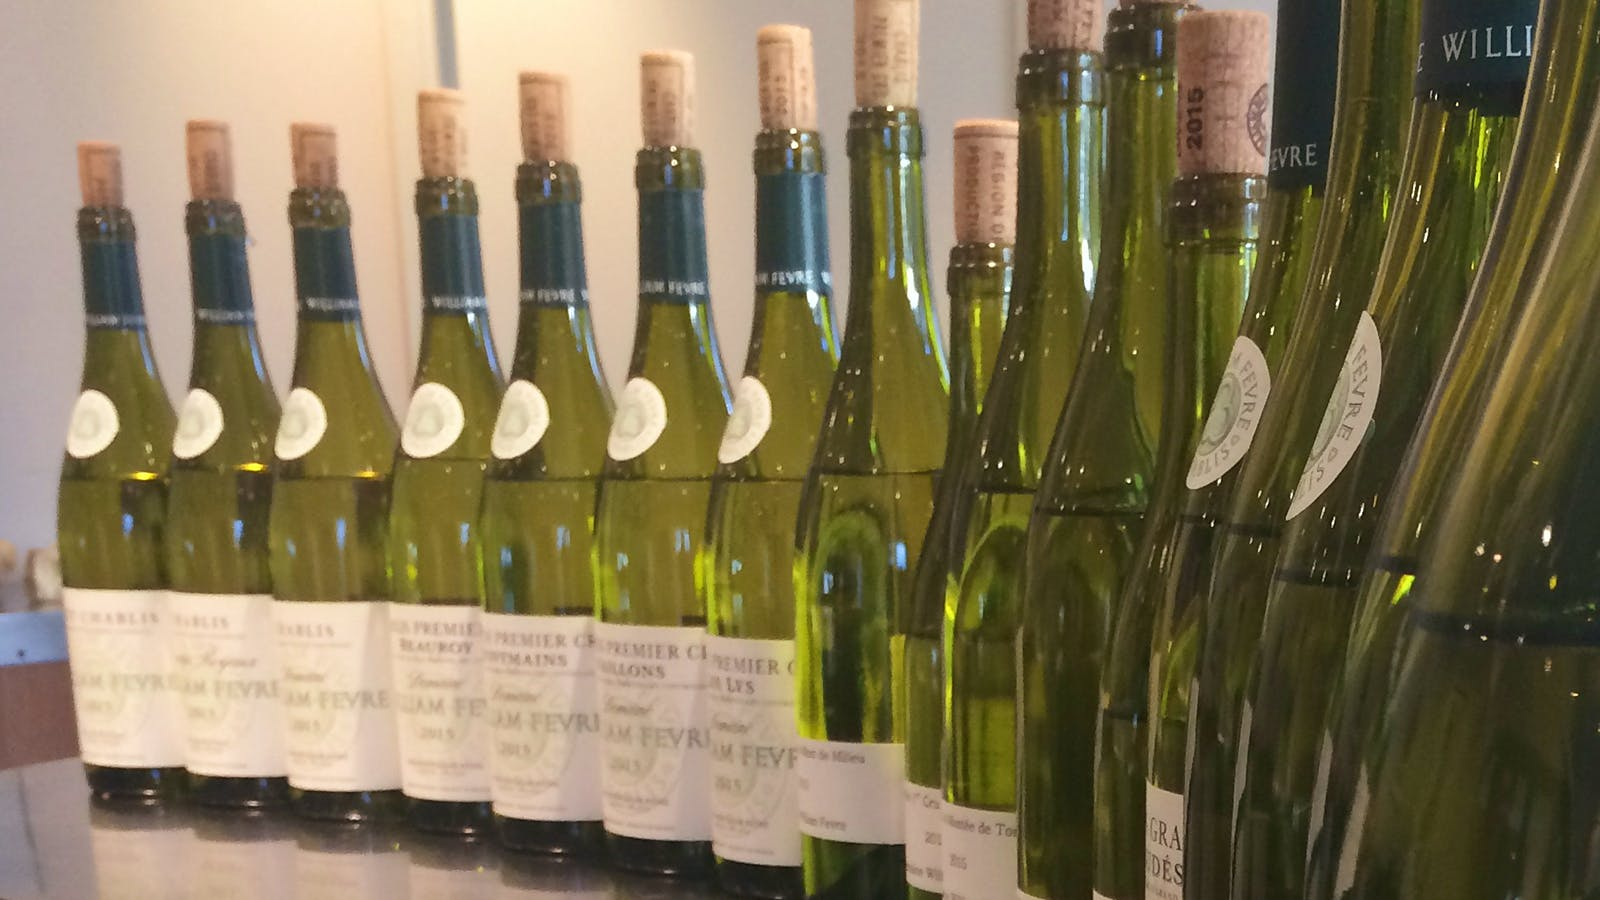 2015 William Fèvre Chablis: Charming and Fresh